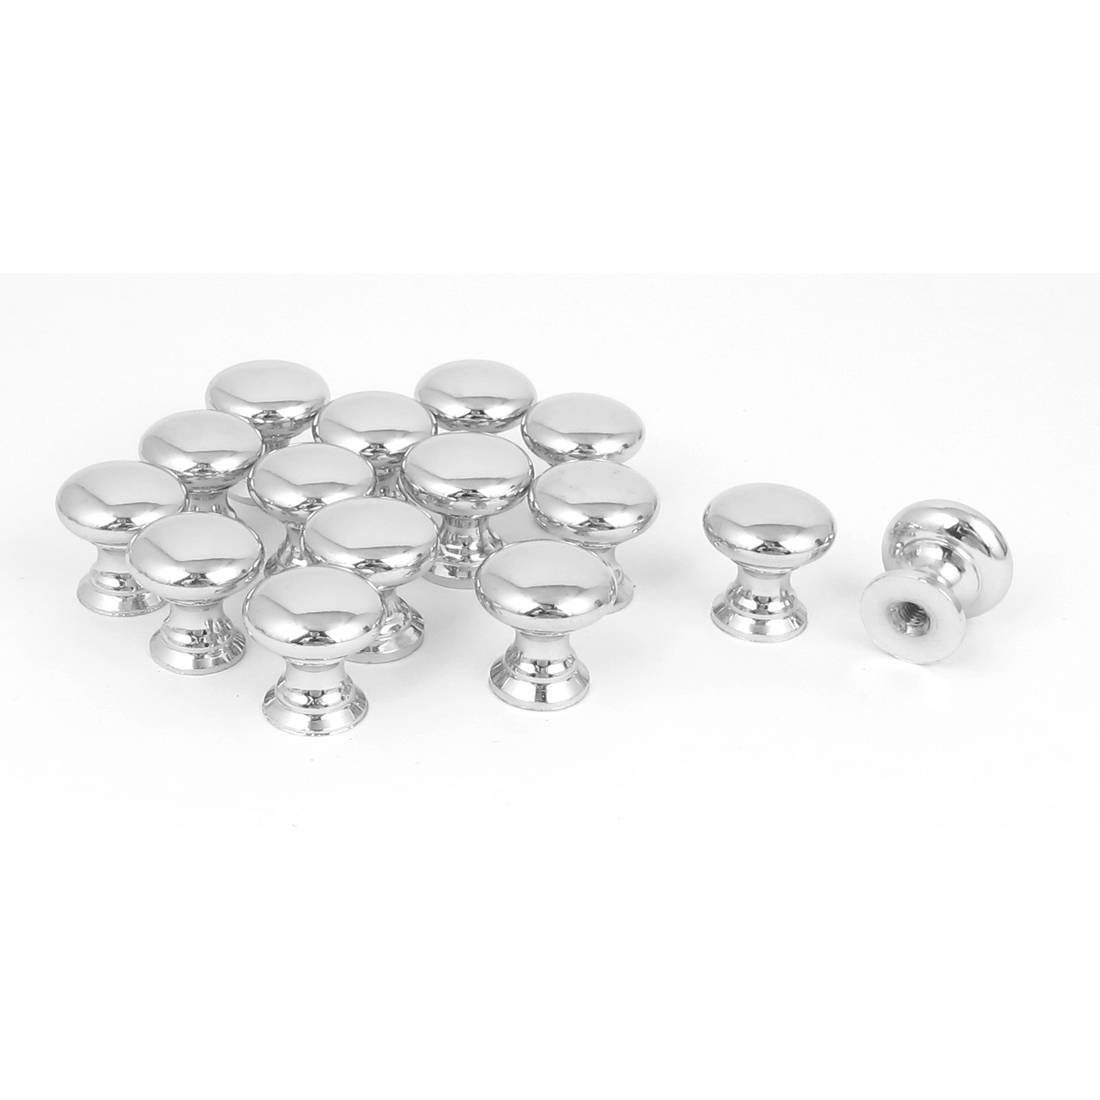 Furniture Cabinet Drawer 18mm Diameter Round Pull Knob Silver Tone 15Pcs